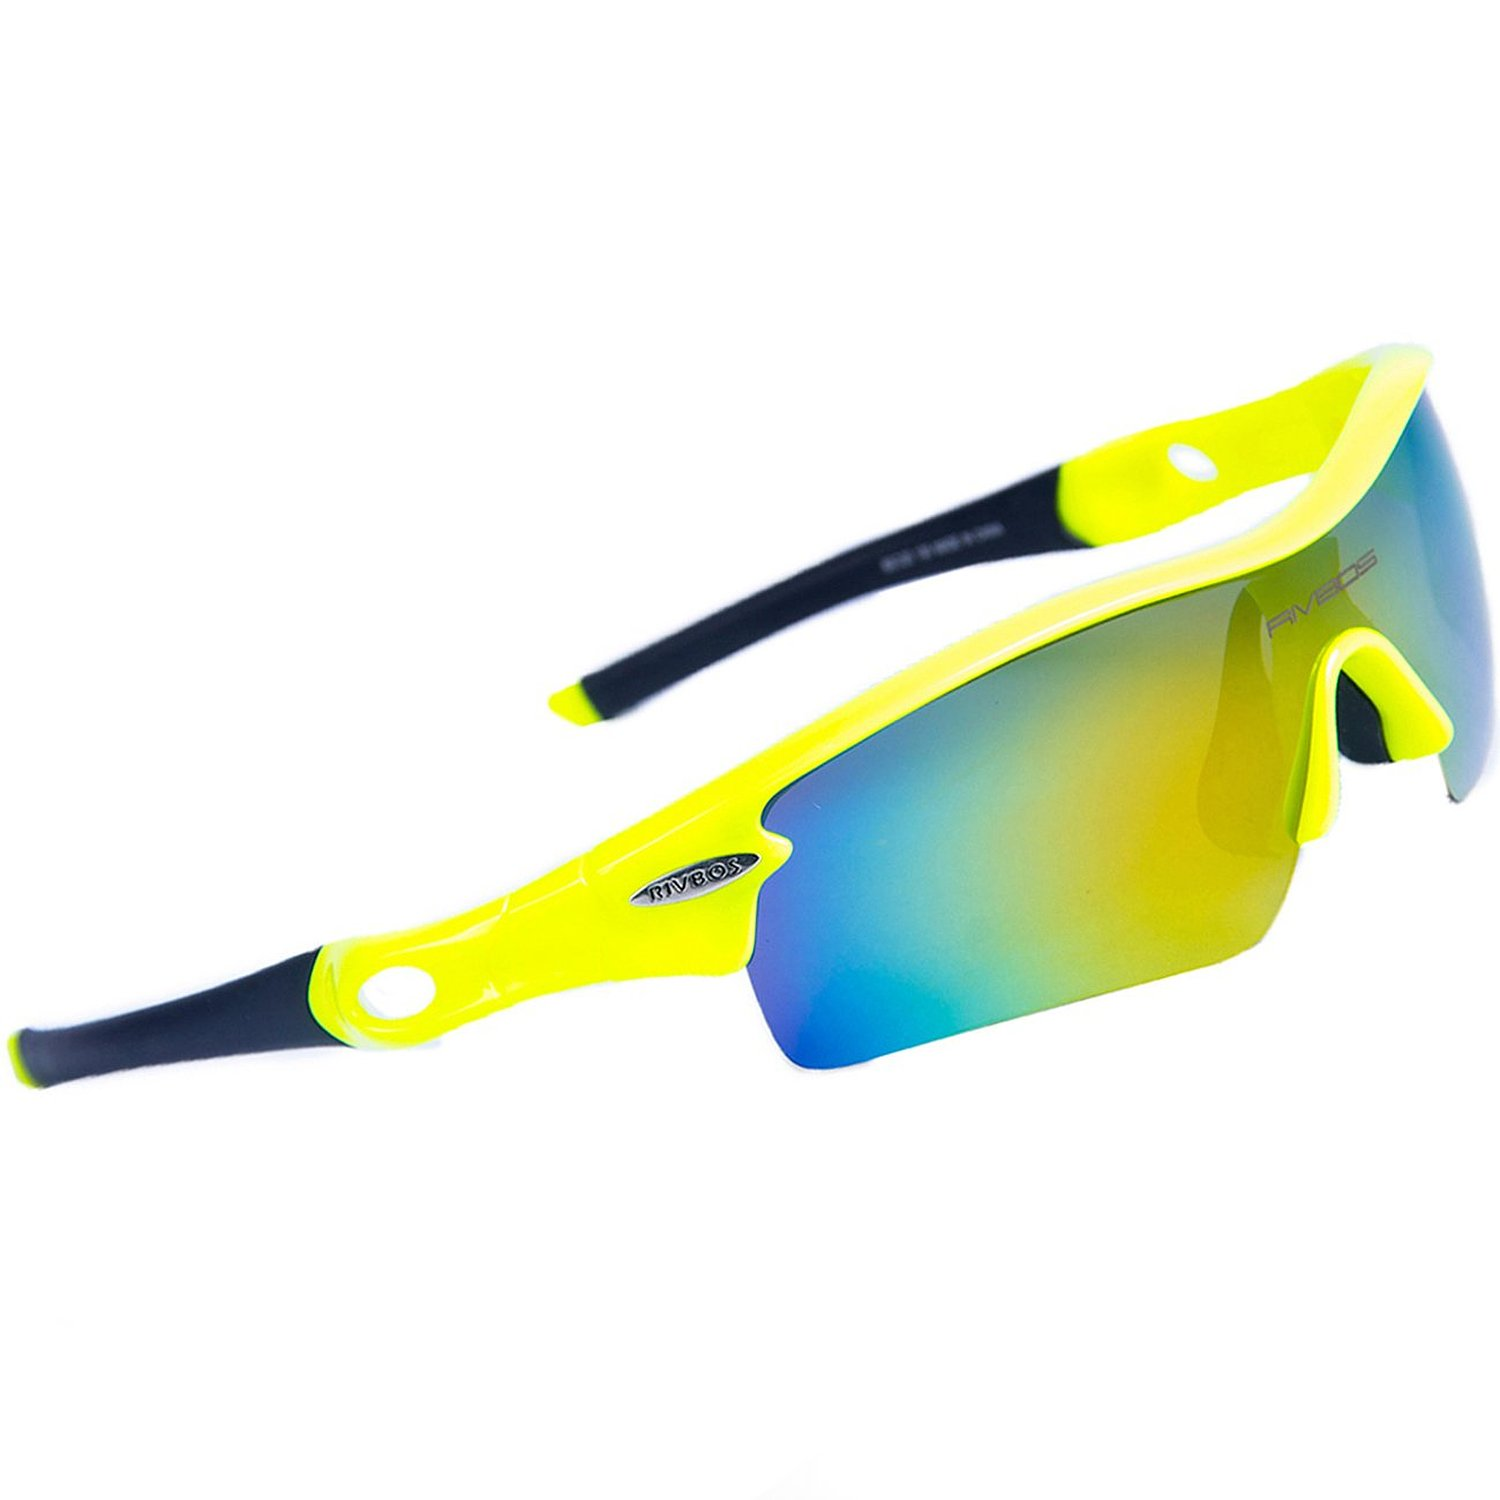 RIVBOS 805 POLARIZED Sports Sunglasses with 5 Set Interchangeable Lenses for Cycling (Green&Black)